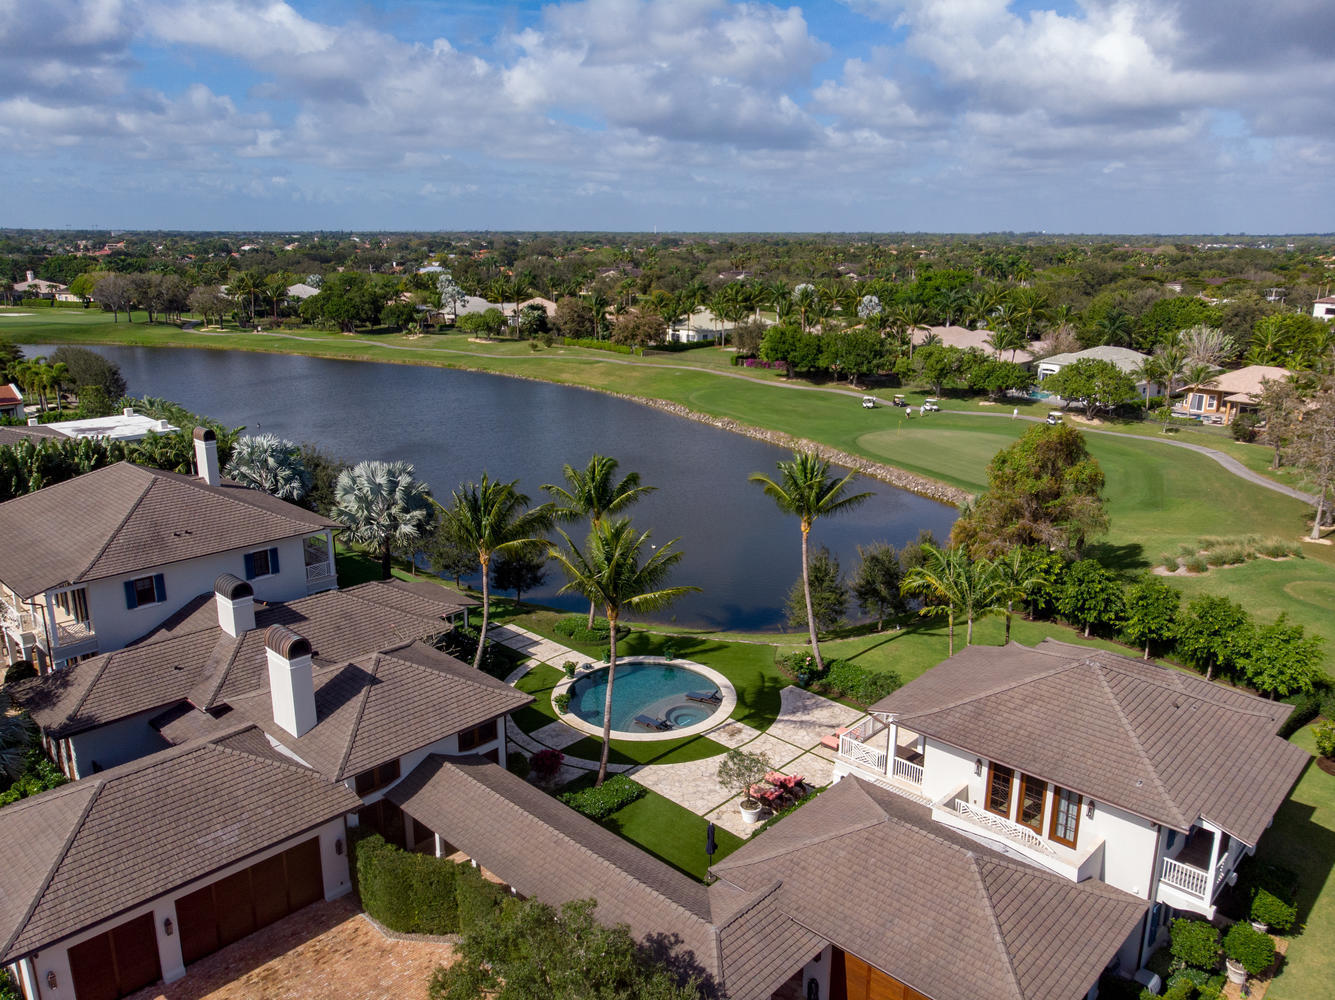 12365 Cypress Island Way, Wellington, Florida 33414, 7 Bedrooms Bedrooms, ,9.2 BathroomsBathrooms,Single Family,For Sale,Palm Beach Polo,Cypress Island,RX-10623831